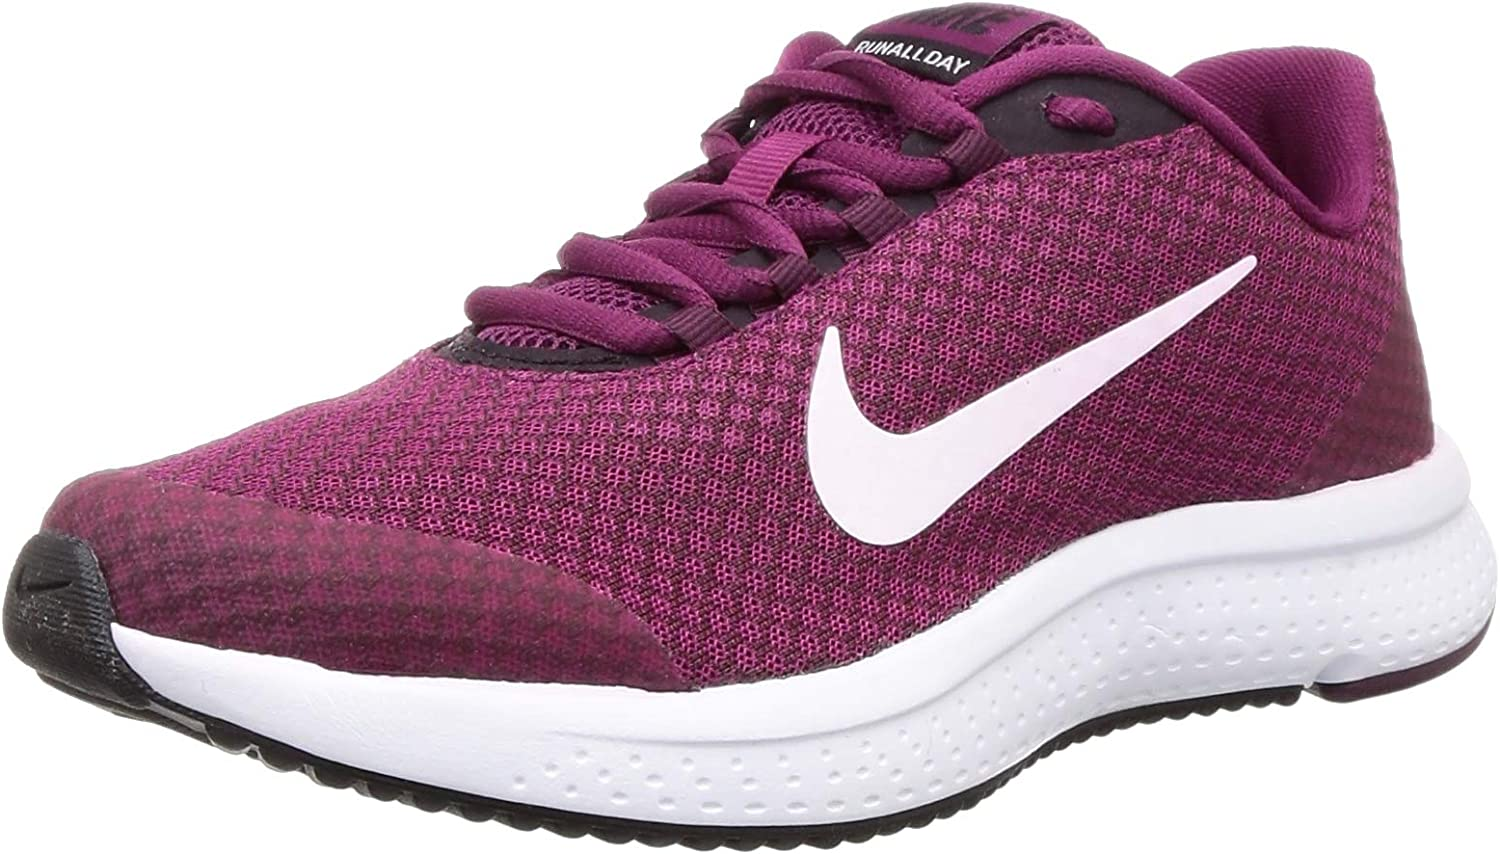 Nike Wmns RUNALLDAY, Zapatillas de Atletismo para Mujer, Multicolor (True Berry/White/Burgundy Ash/Bordeaux 603), 36.5 EU: Amazon.es: Zapatos y complementos